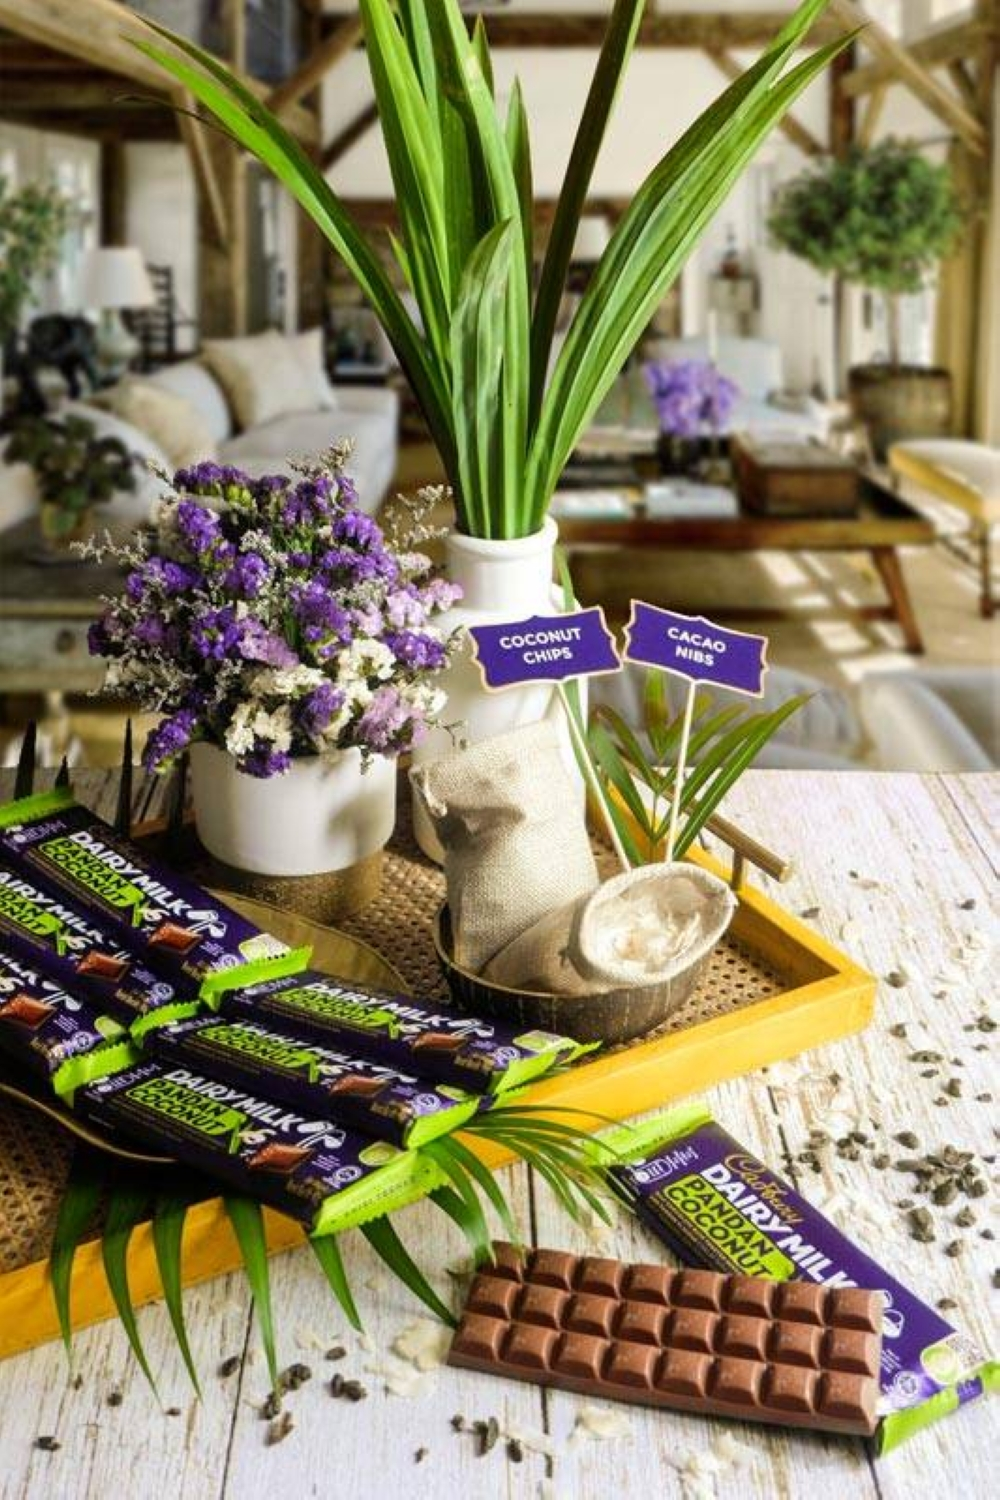 Imagine combining yummy local coconut, sweet pandan, and creamy British chocolate in a delectable candy bar.